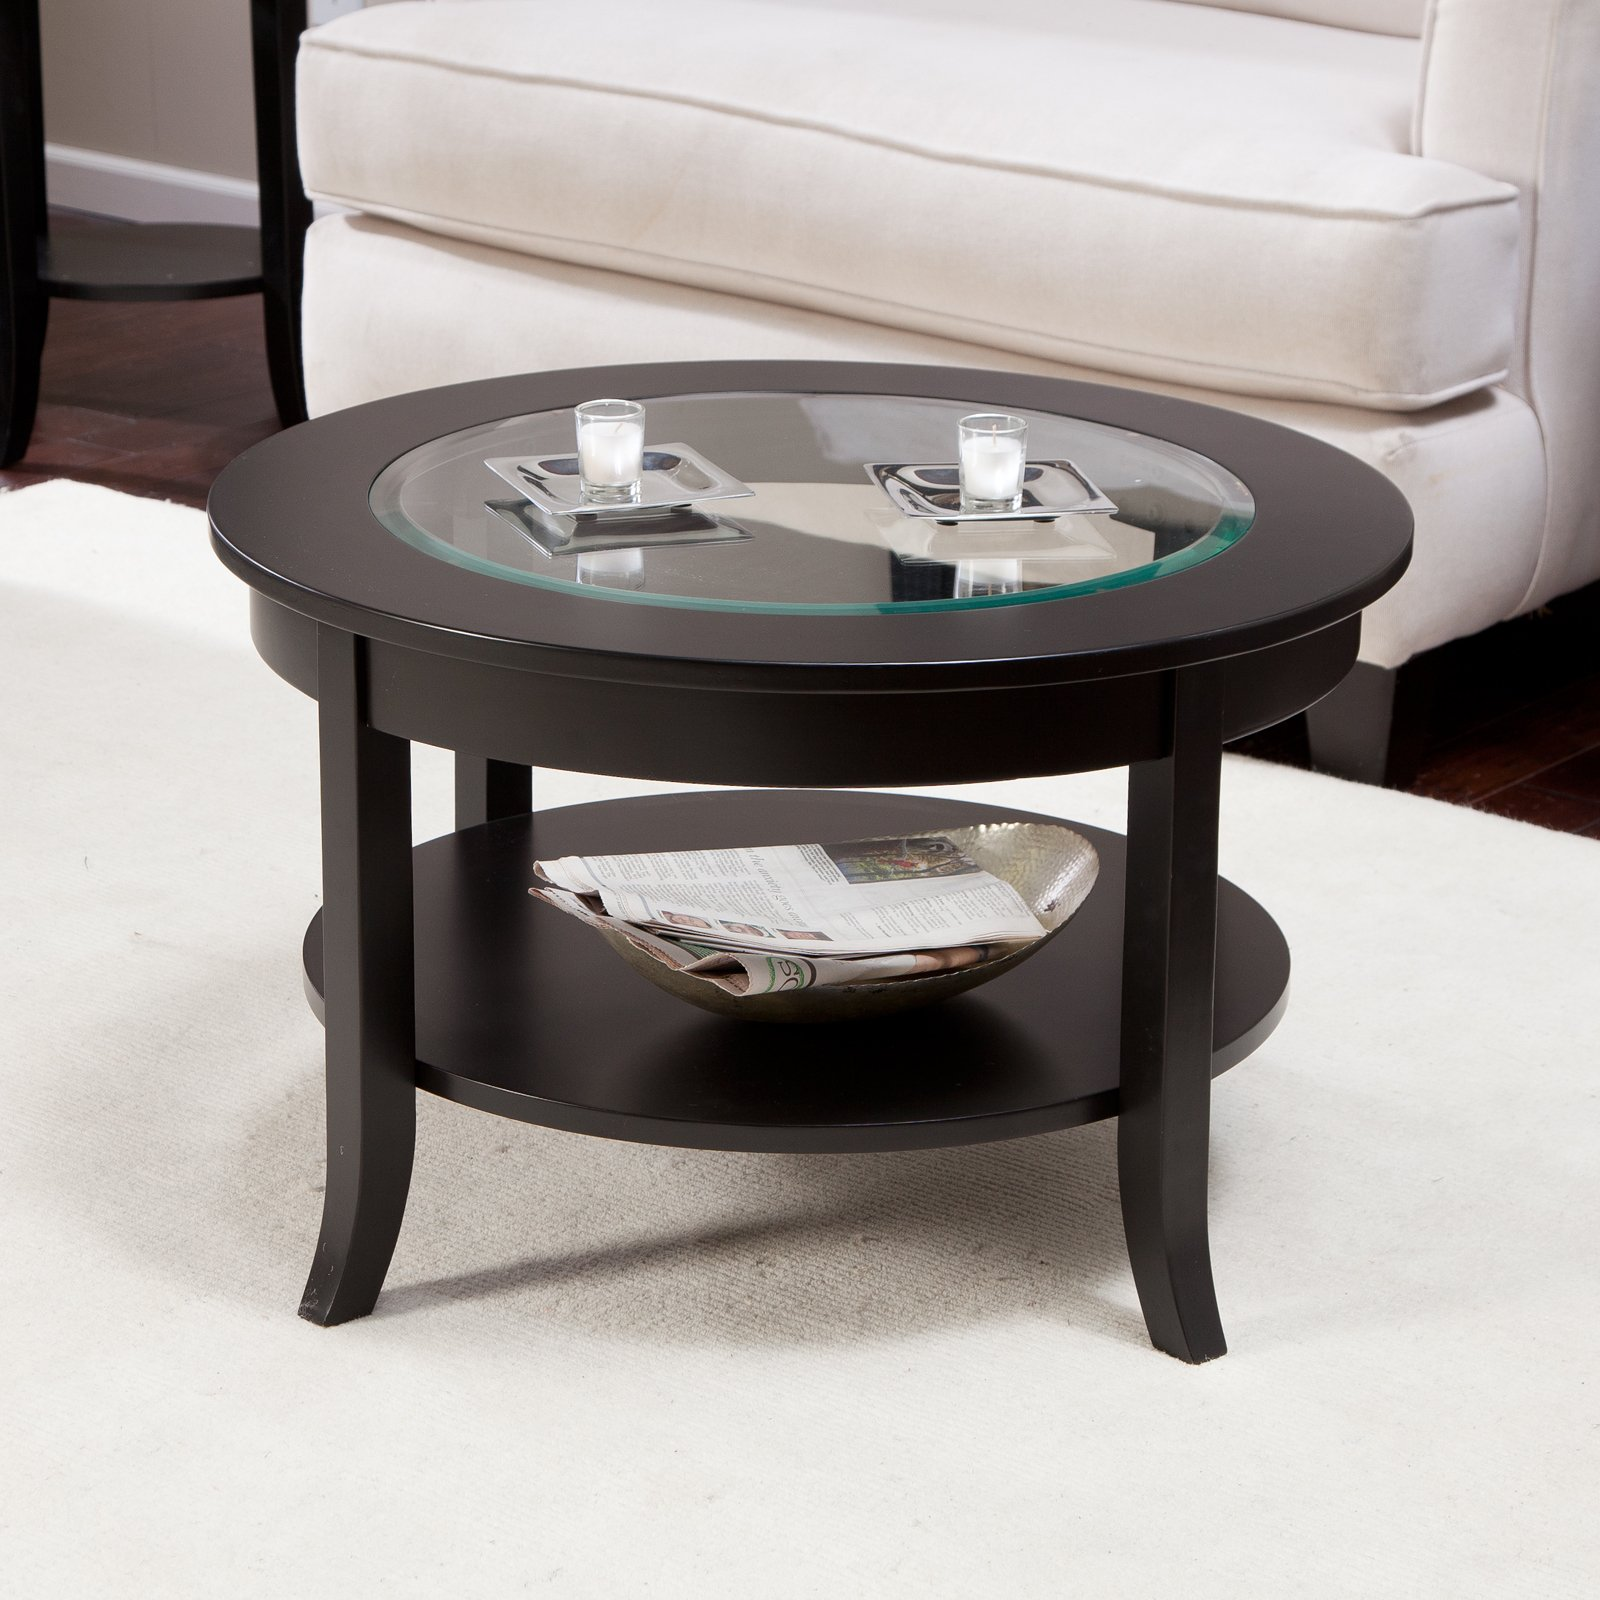 cheap side tables for living room. Glass Coffee Tables For Small Spaces The Outline Of It Should Be Intent On  Furniture 10 Photos Living Room for